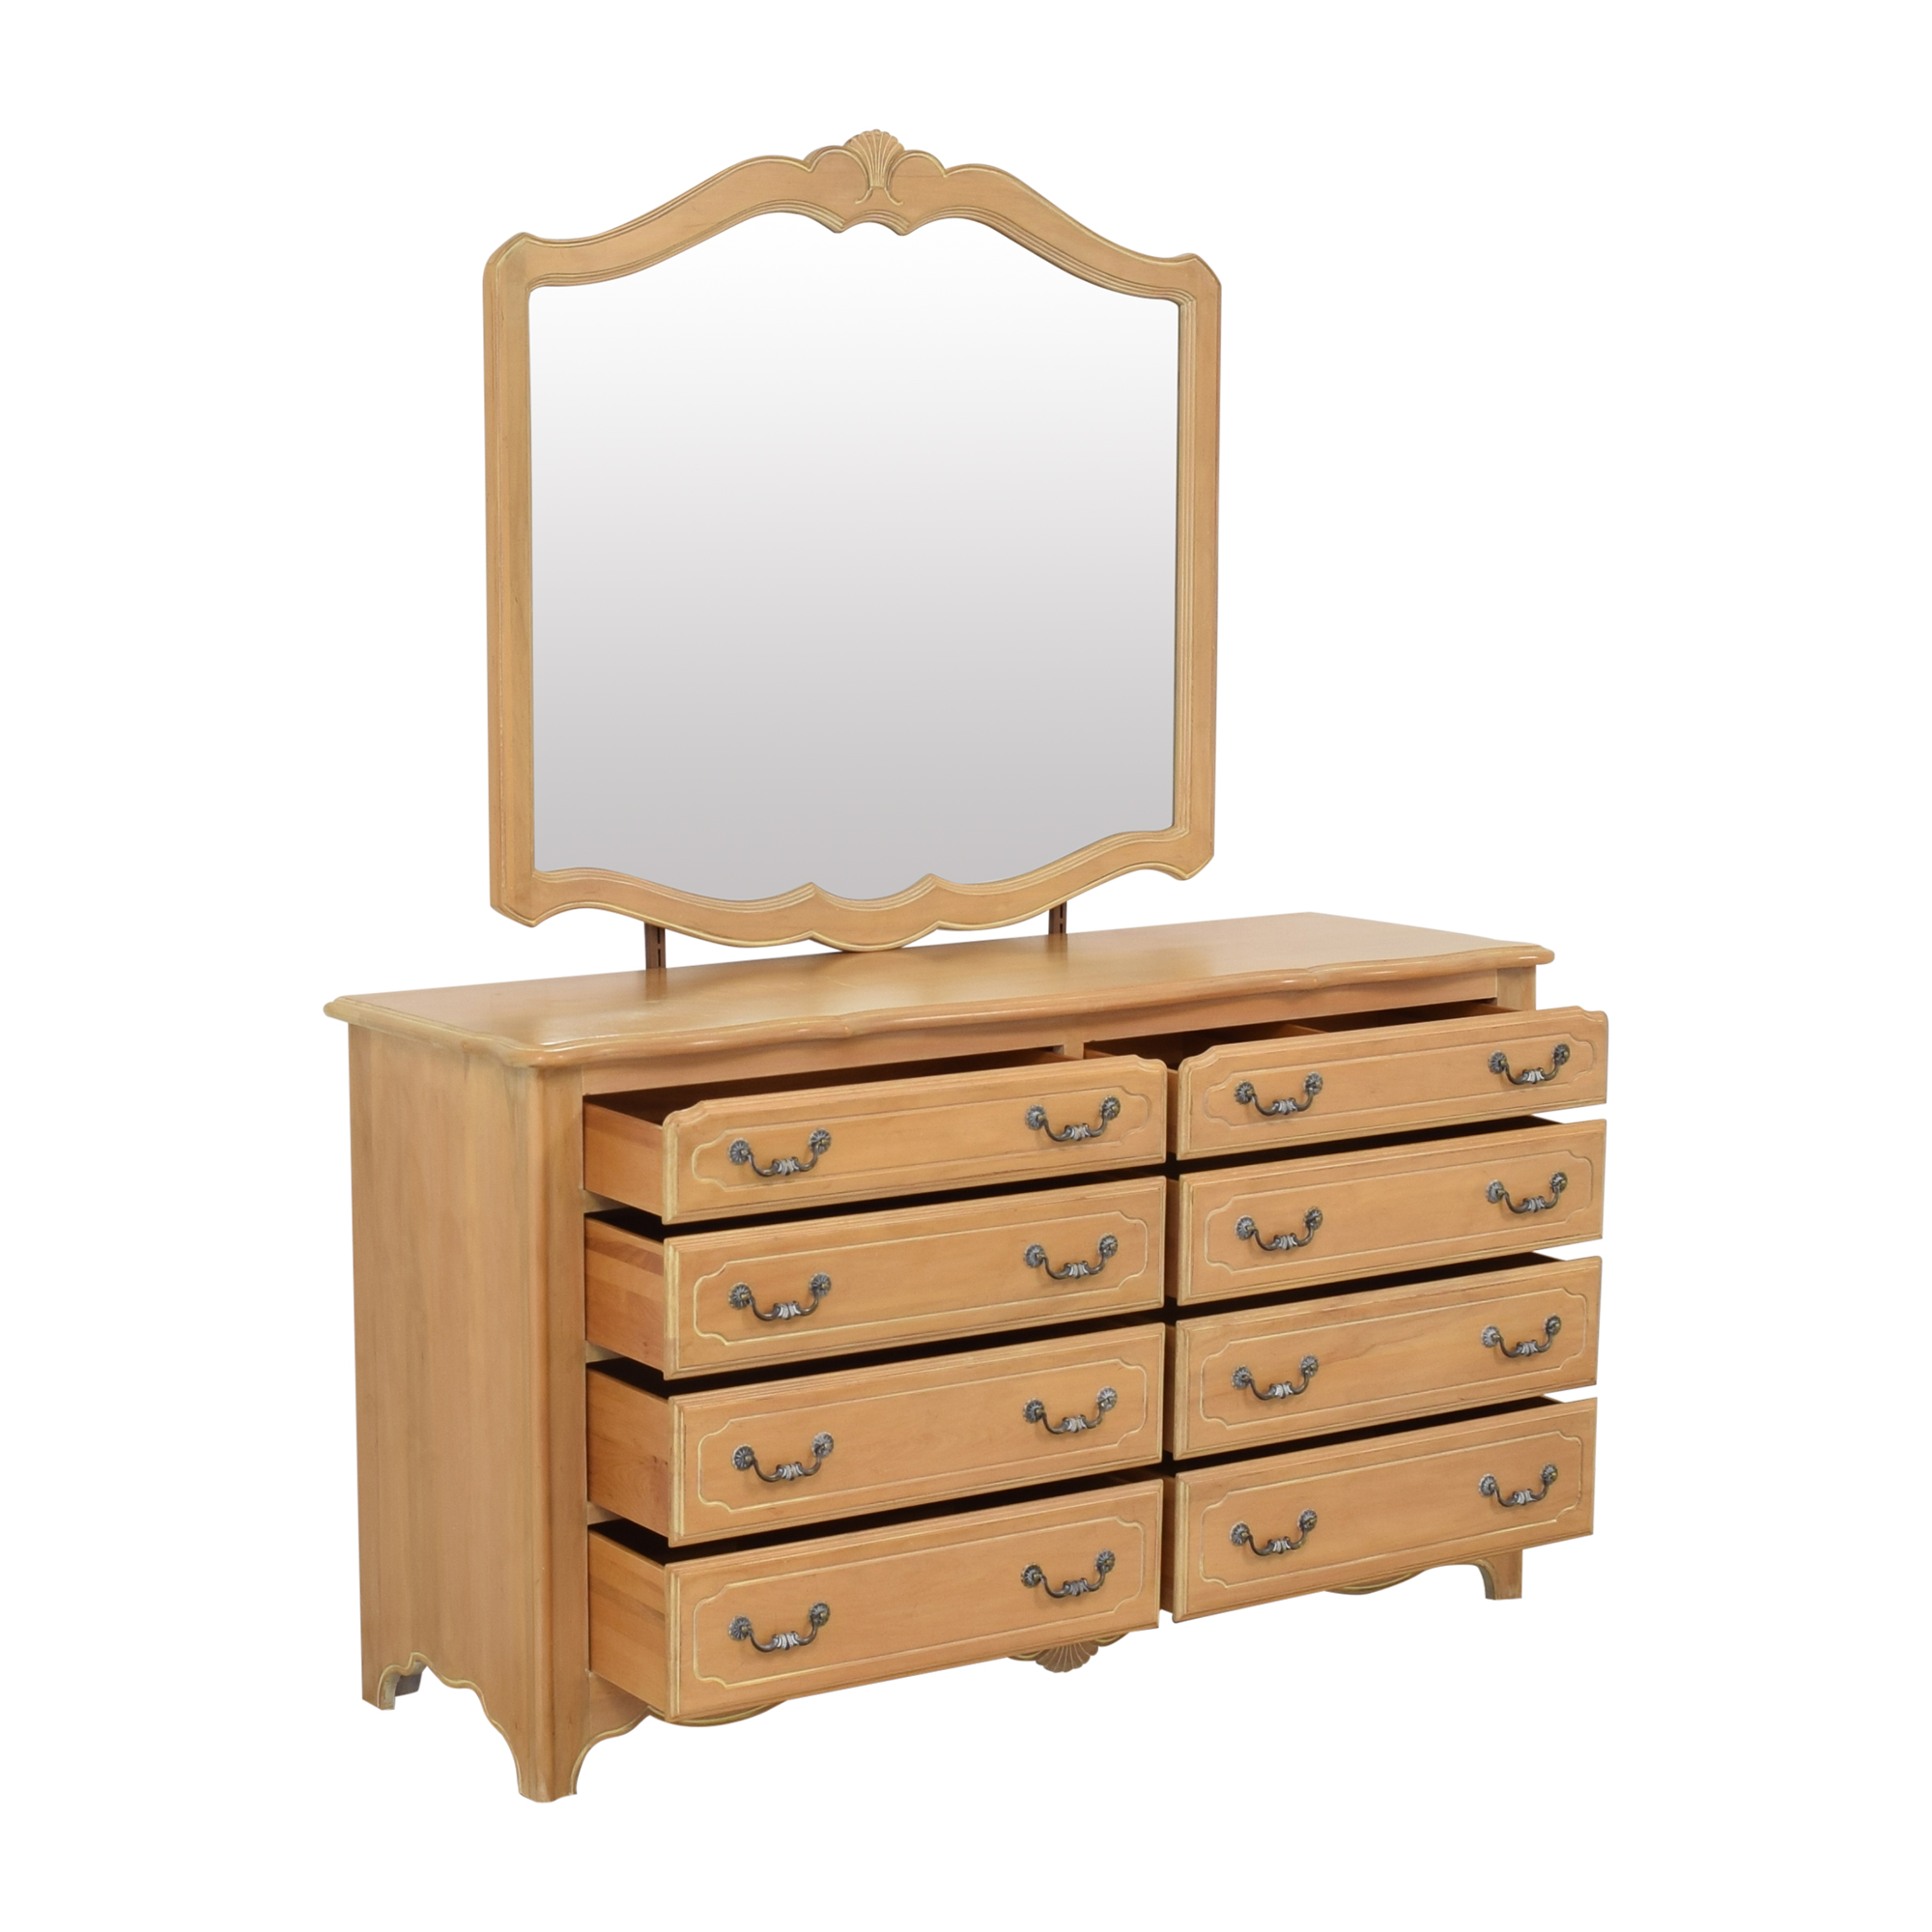 Ethan Allen Ethan Allen Country French Dresser with Mirror for sale